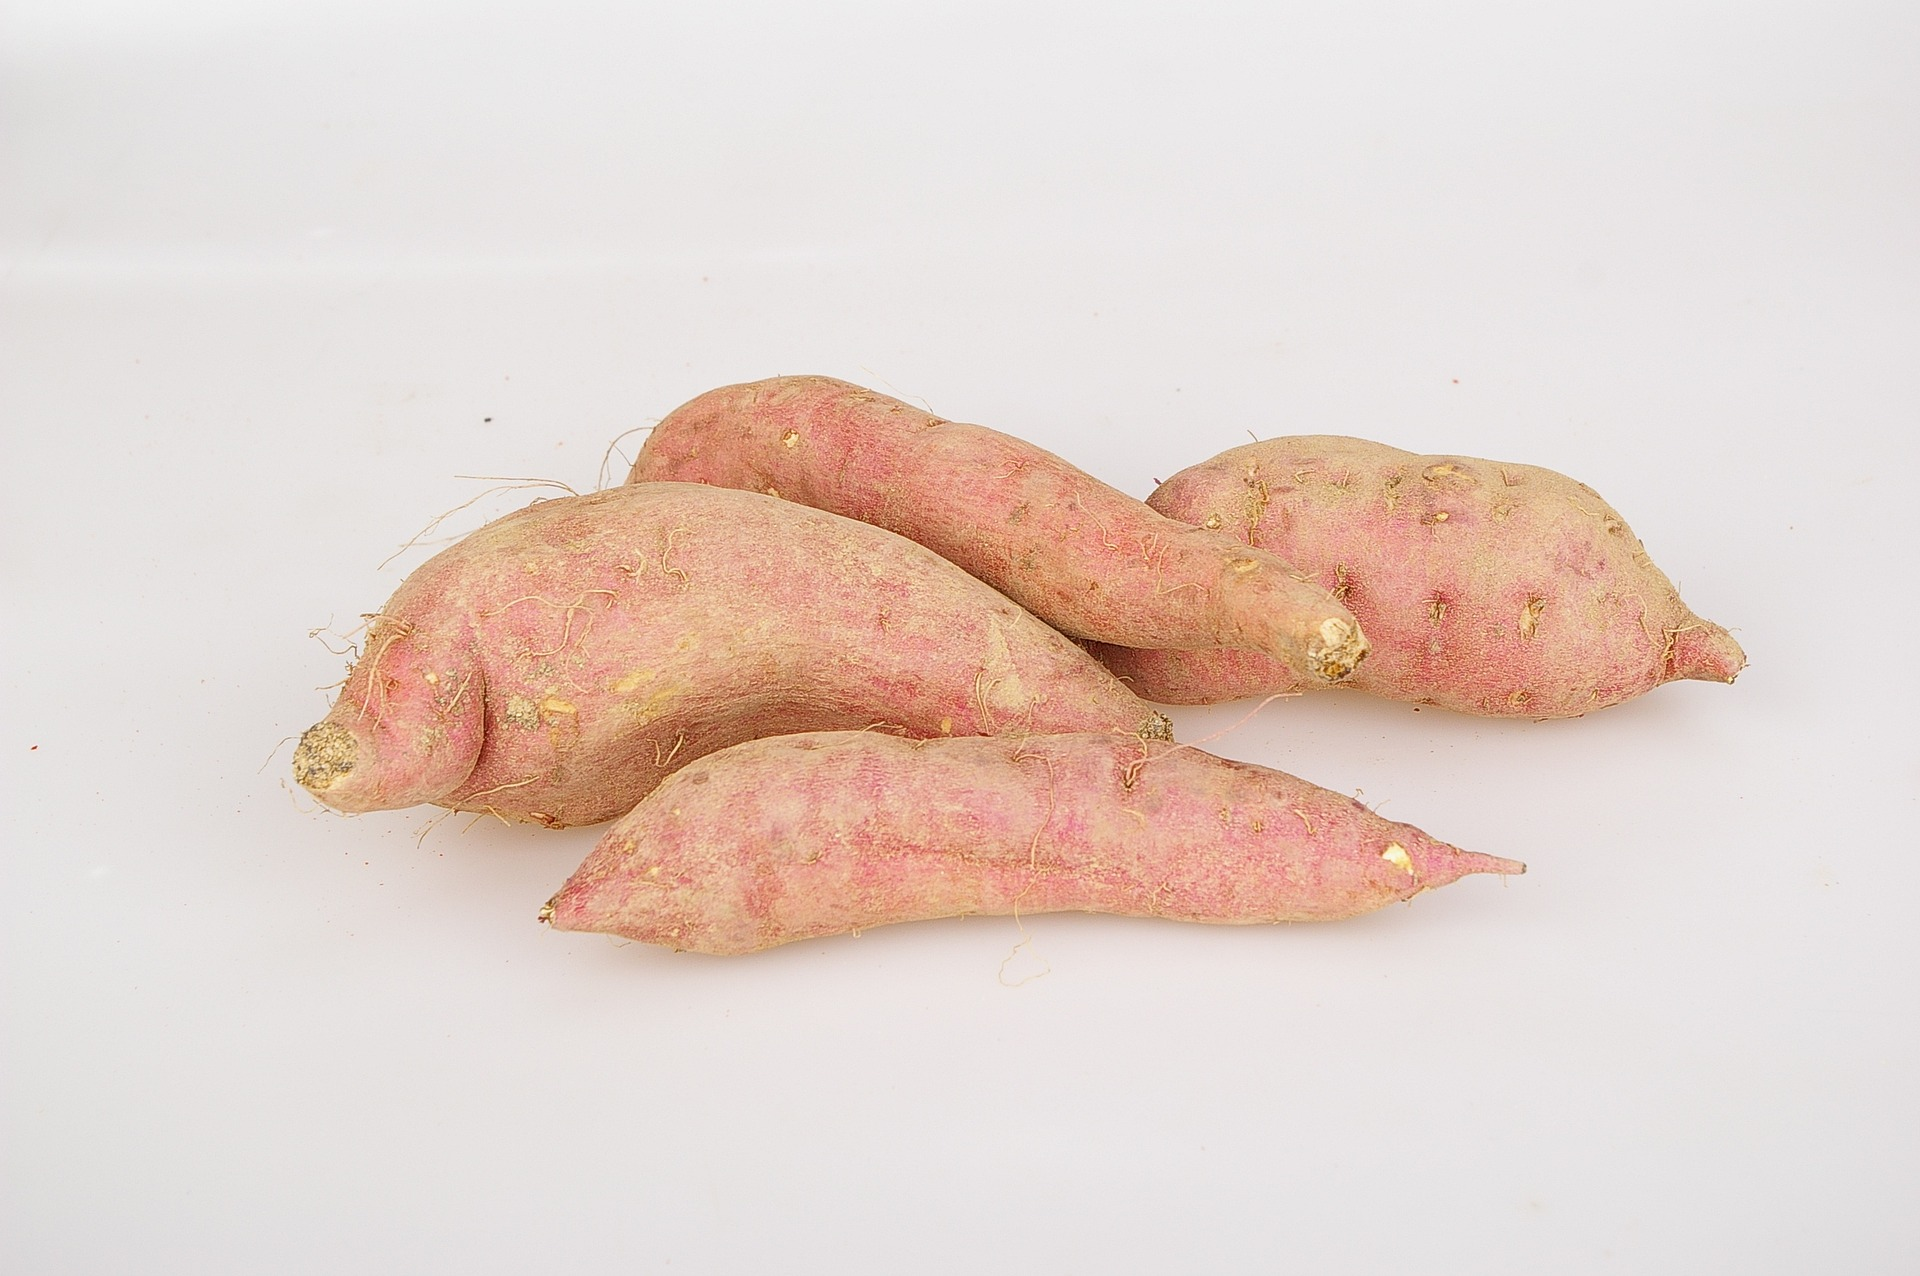 sweet-potato-936680_1920